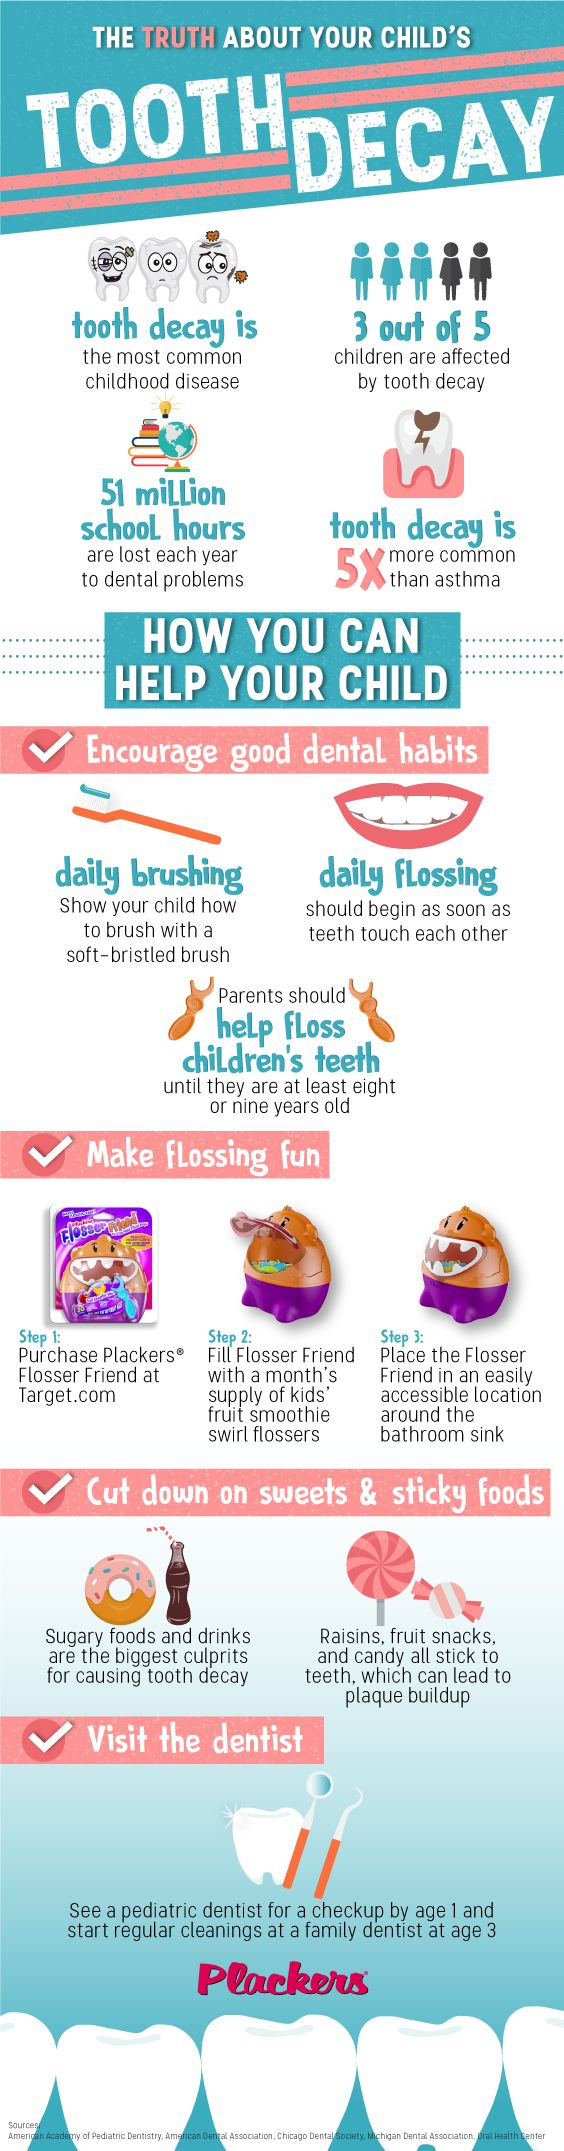 truth about your child's tooth decay